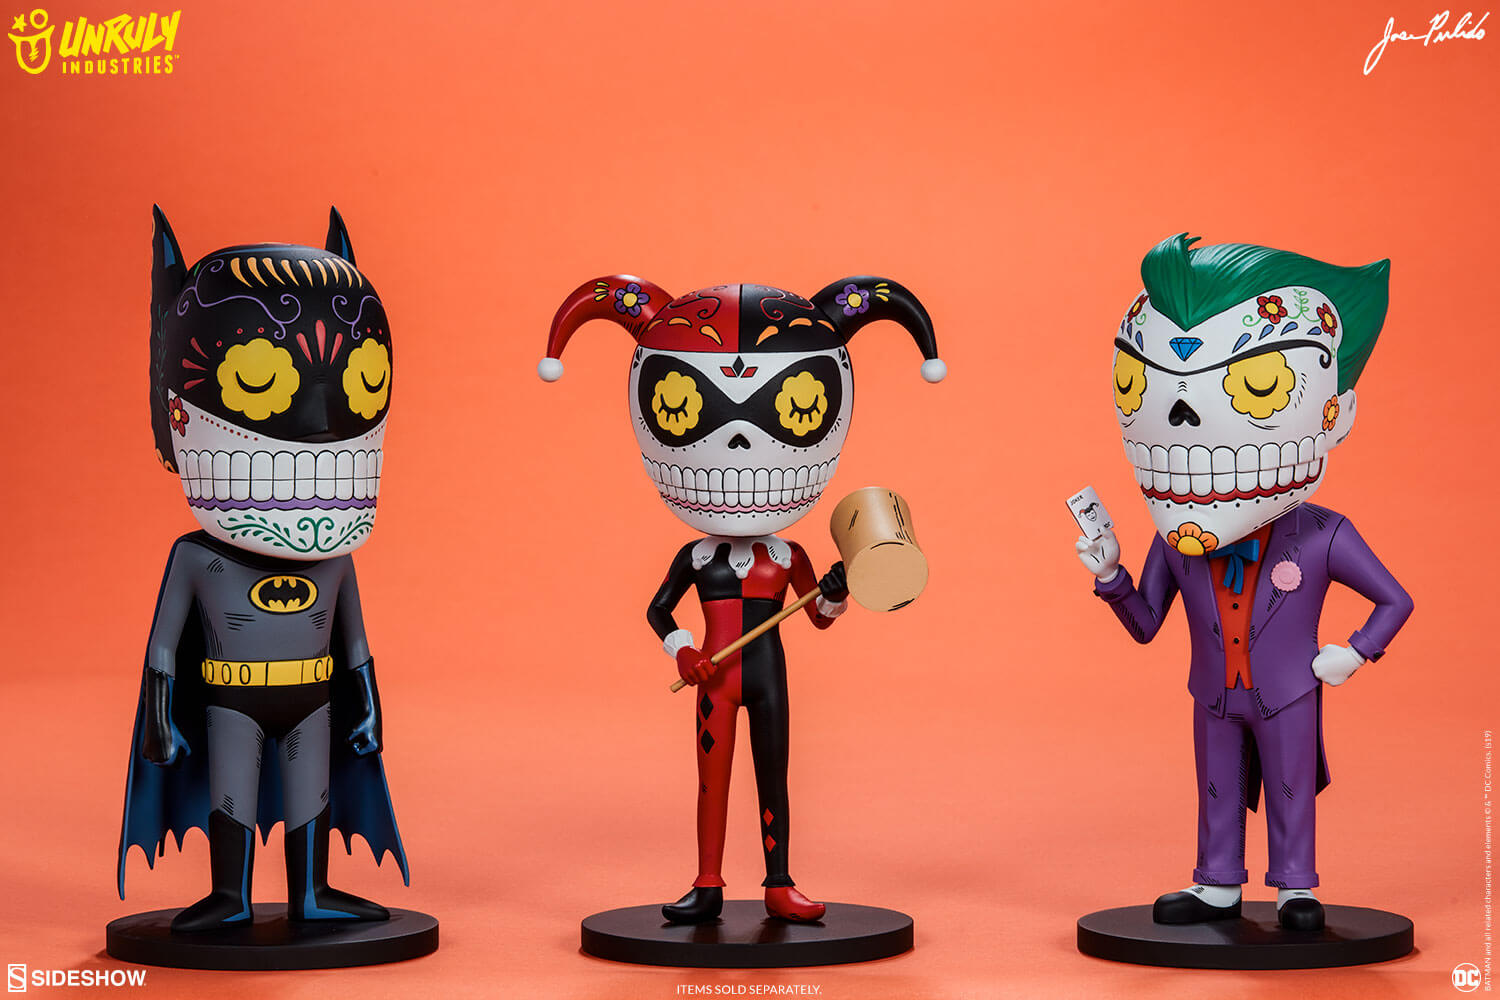 Designer art toys of Batman, Harley Quinn, and The Joker designed to resemble calavera sugar skulls.